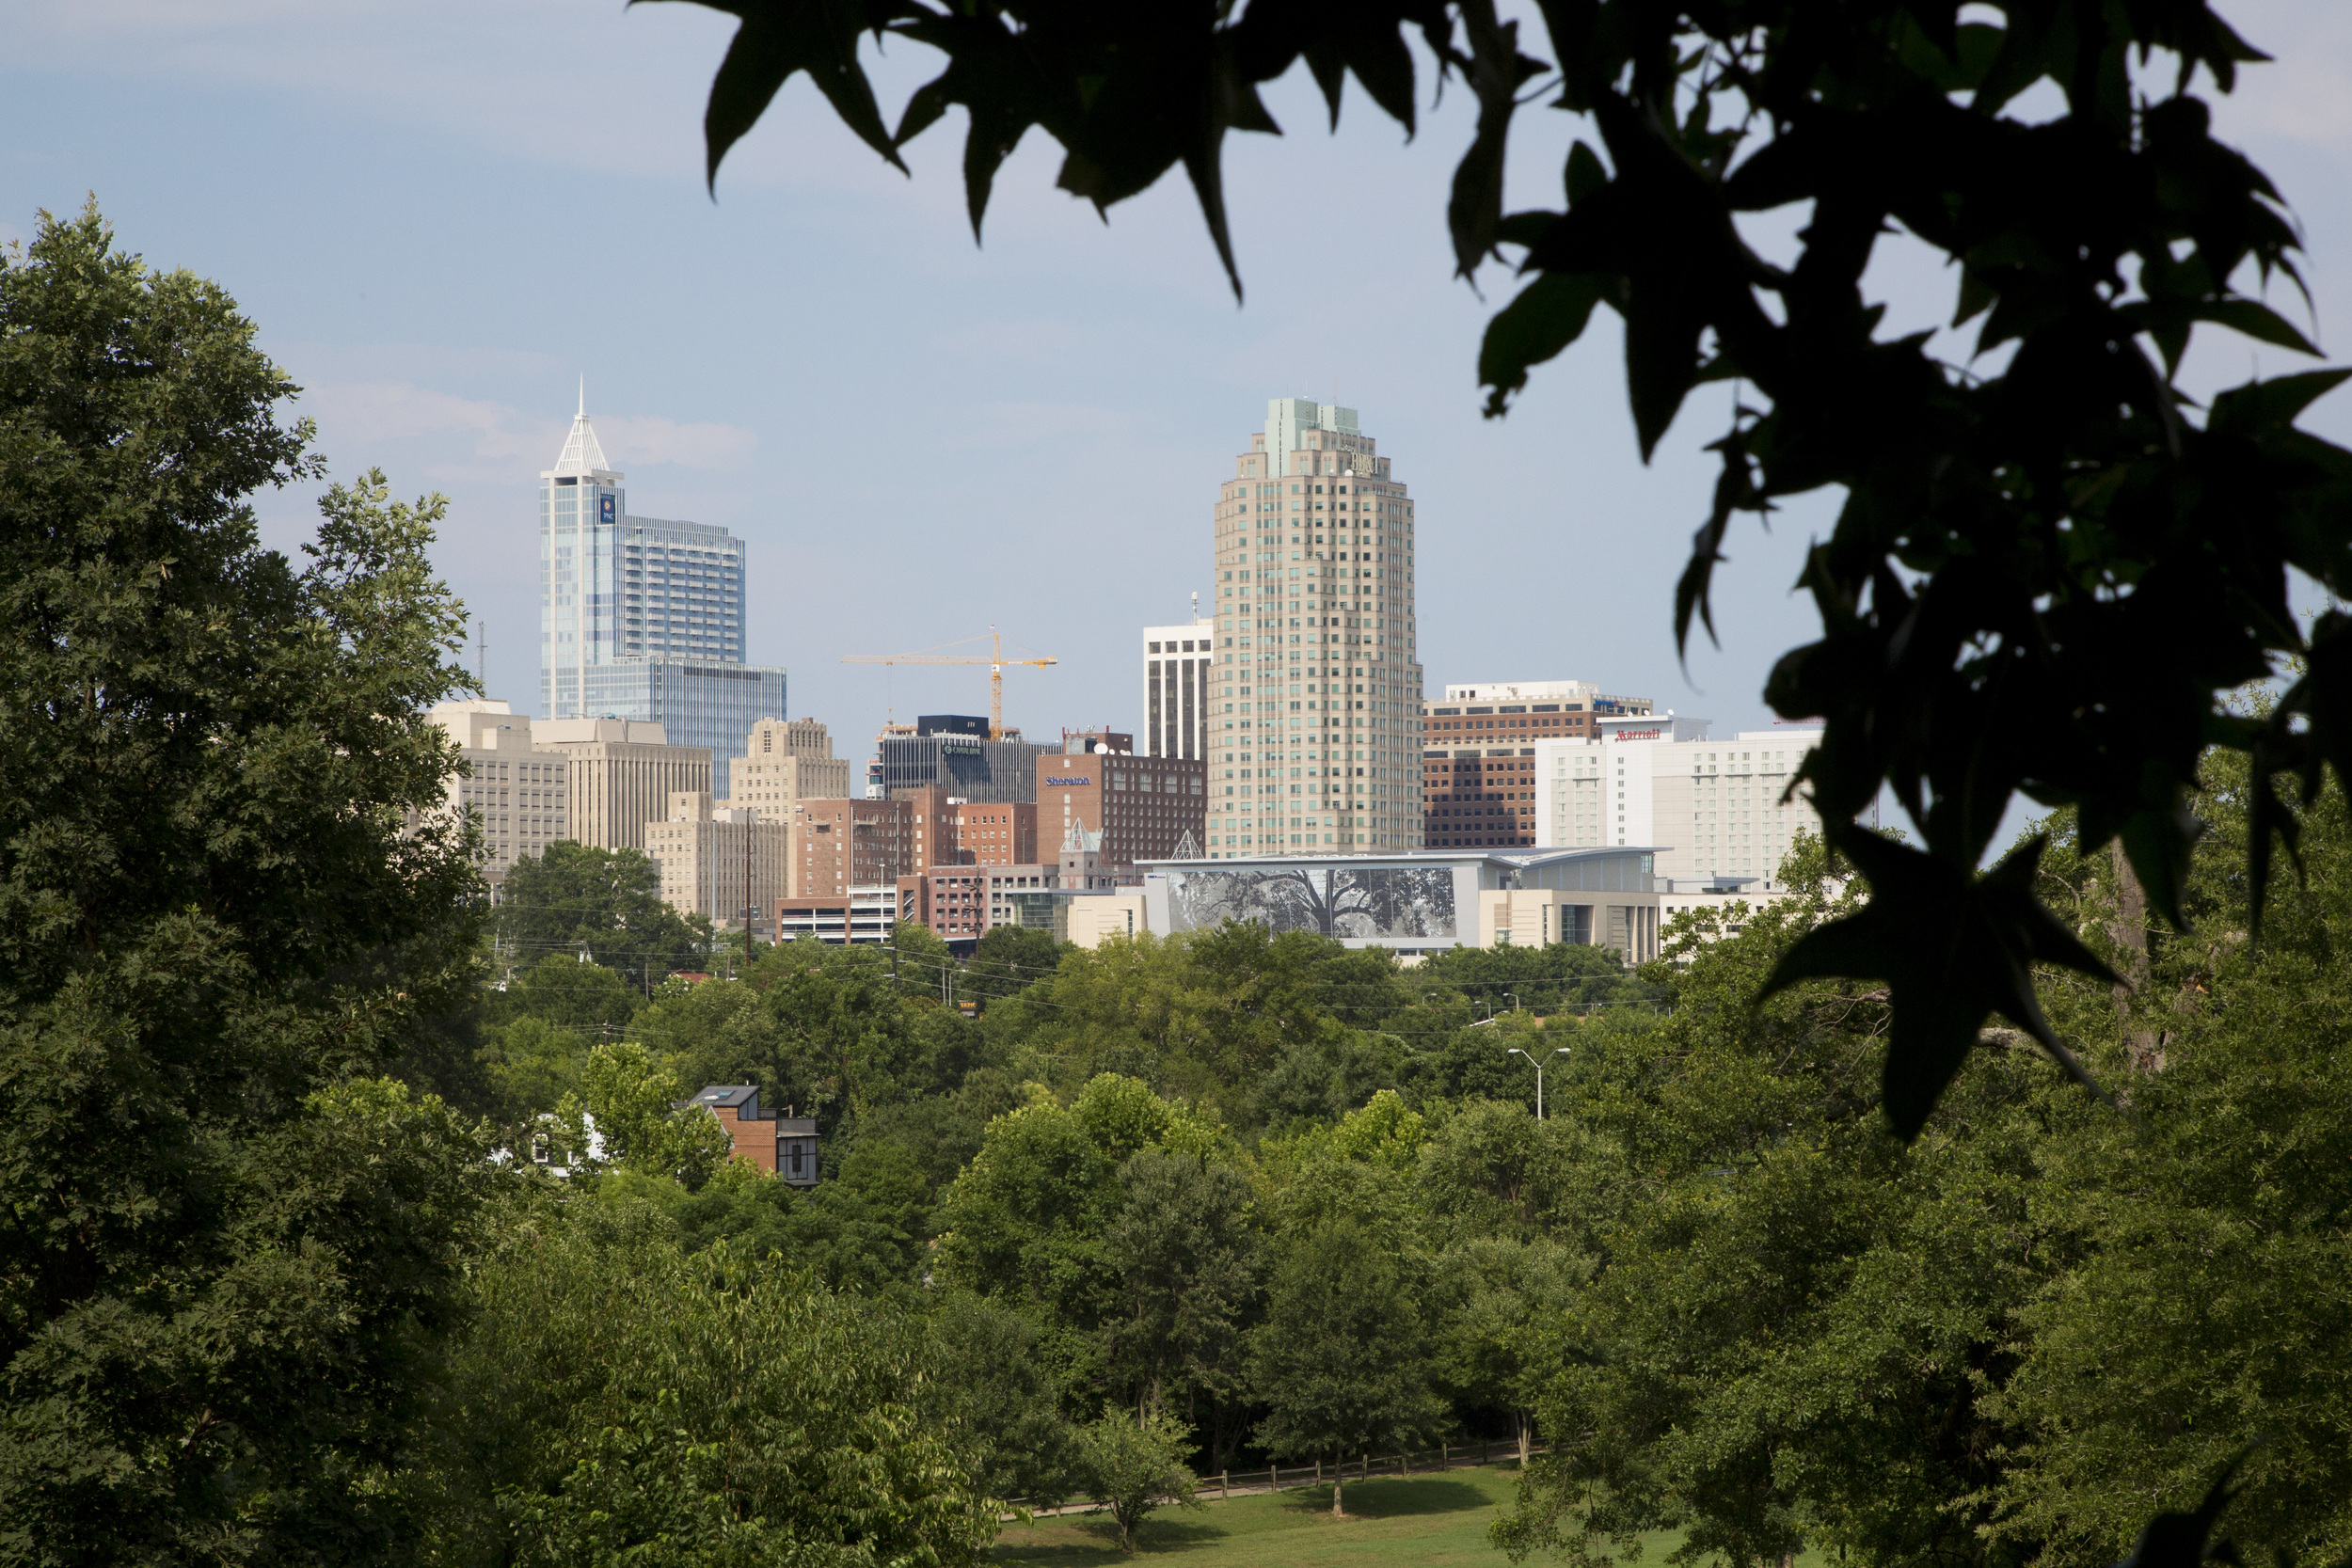 Monday: The Raleigh skyline seen from the Dorothea Dix campus. In an interview Monday, July 14, 2014, Mayor Nancy McFarlane voiced her frustrations about the slow negotiations over the Dorothea Dix property, the former psychiatric hospital campus that the city wishes to purchase from the state to use as a public park.